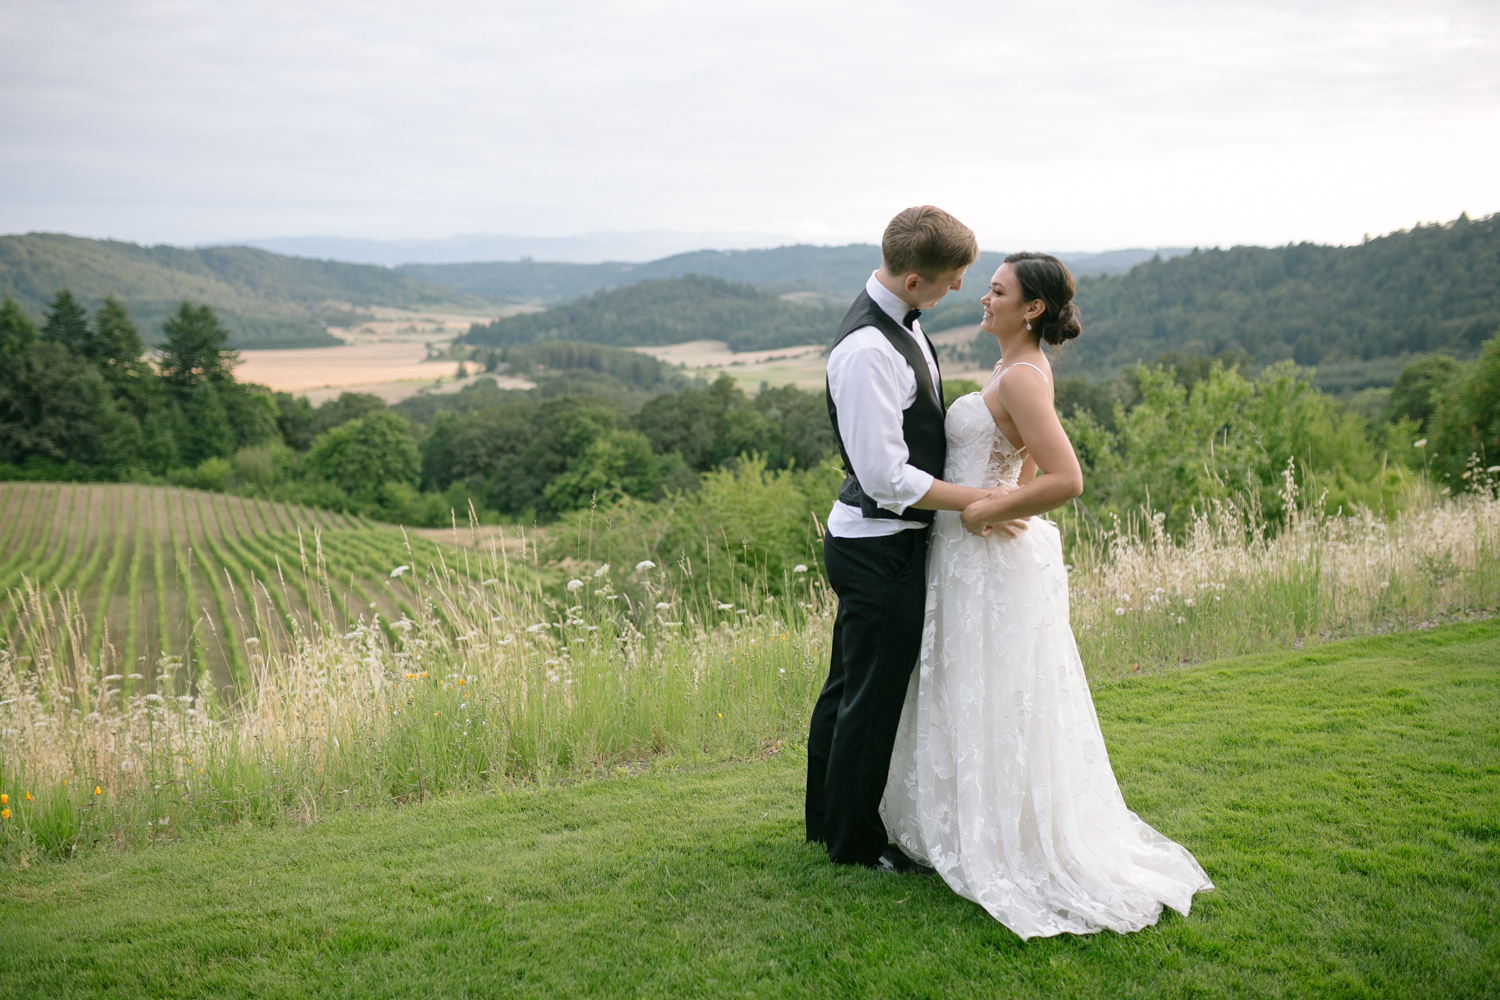 Youngberg Hill Vineyard Wedding in Wine Country Oregon - Corrie Mick Photography-206.jpg